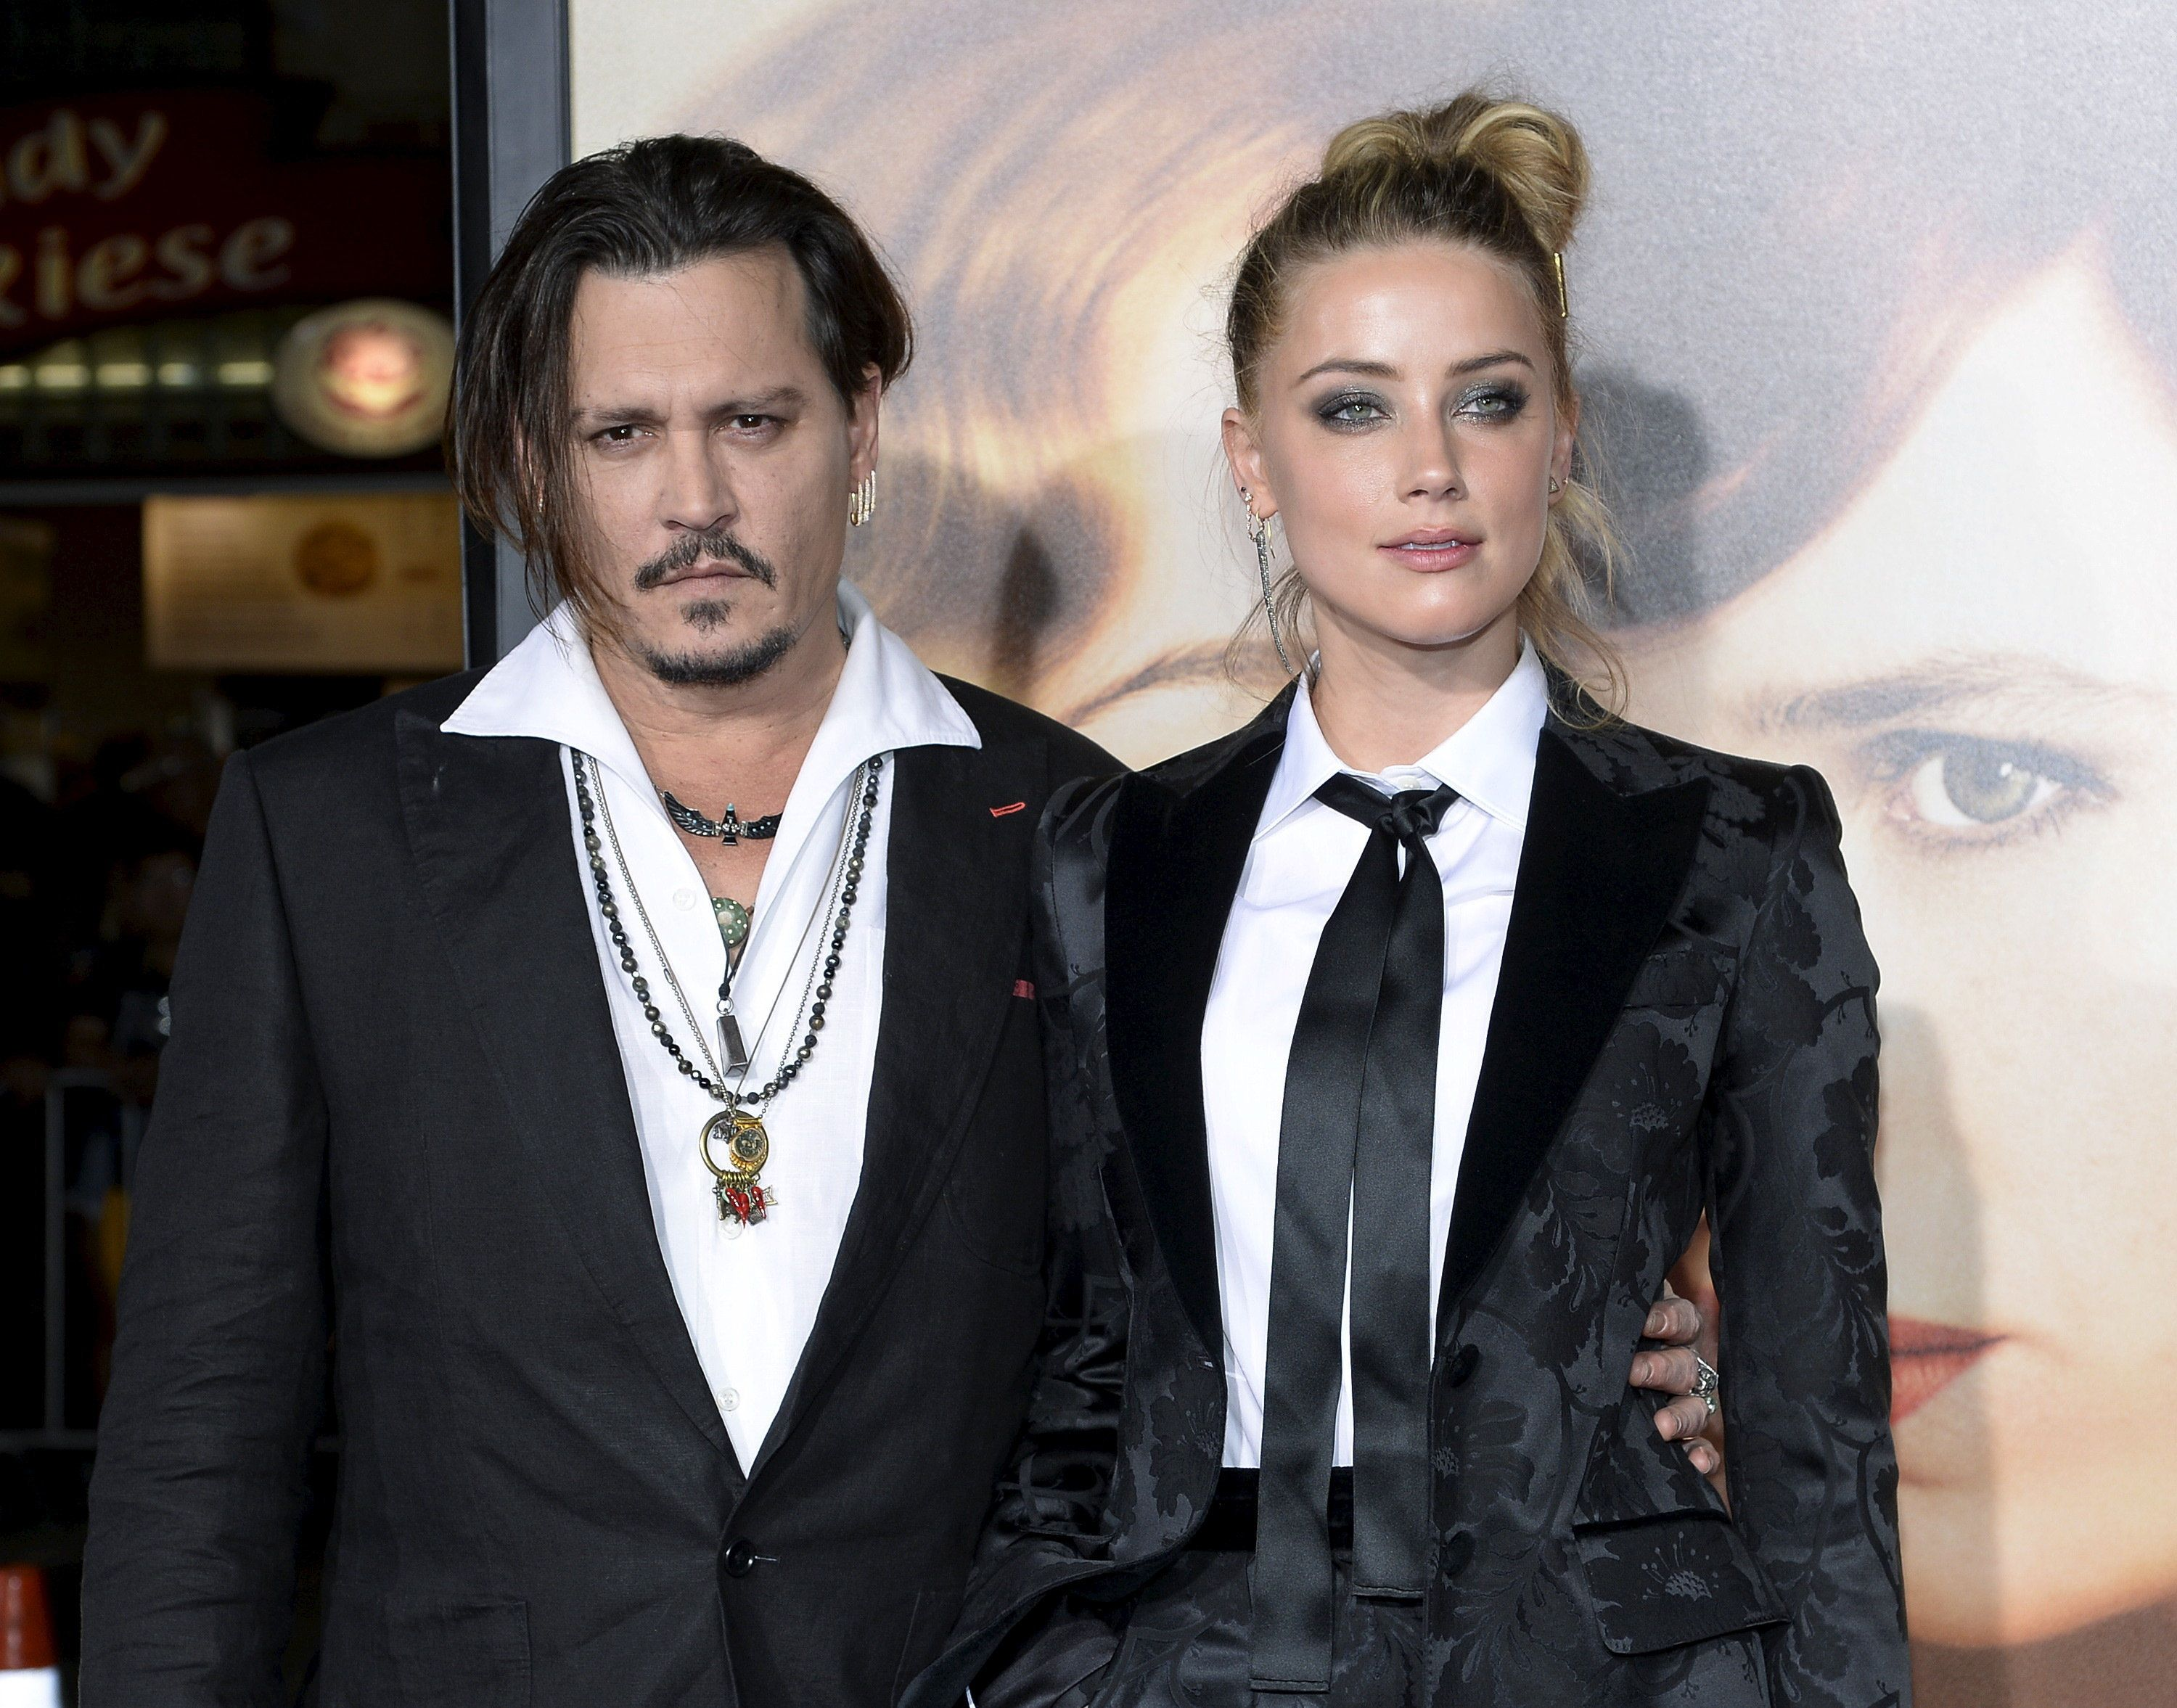 Johnny and Amber in November